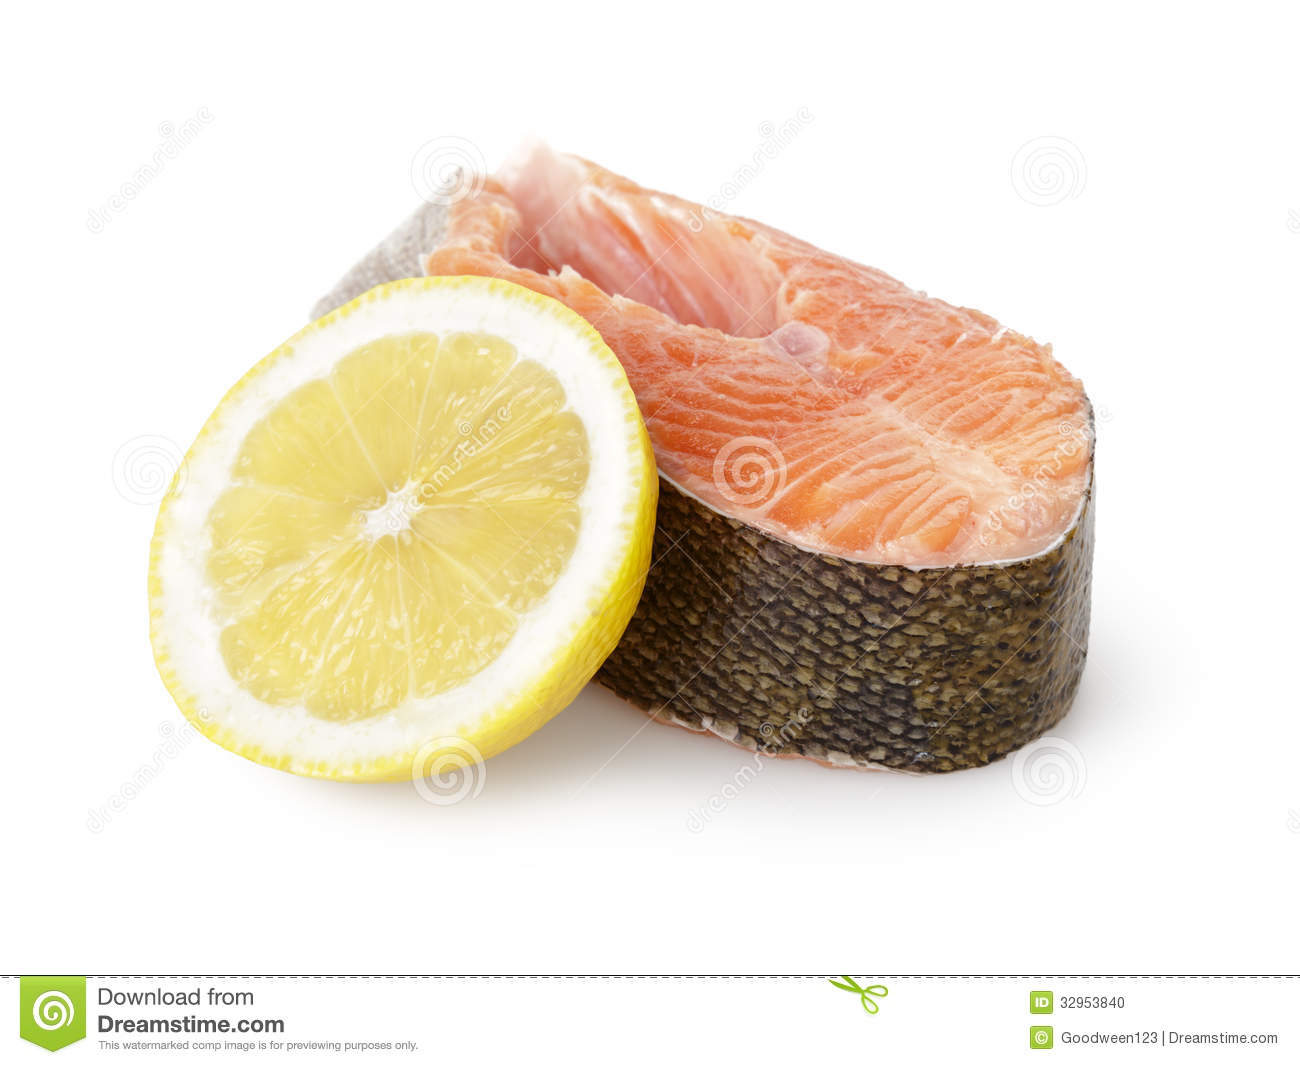 how to cook trout steaks